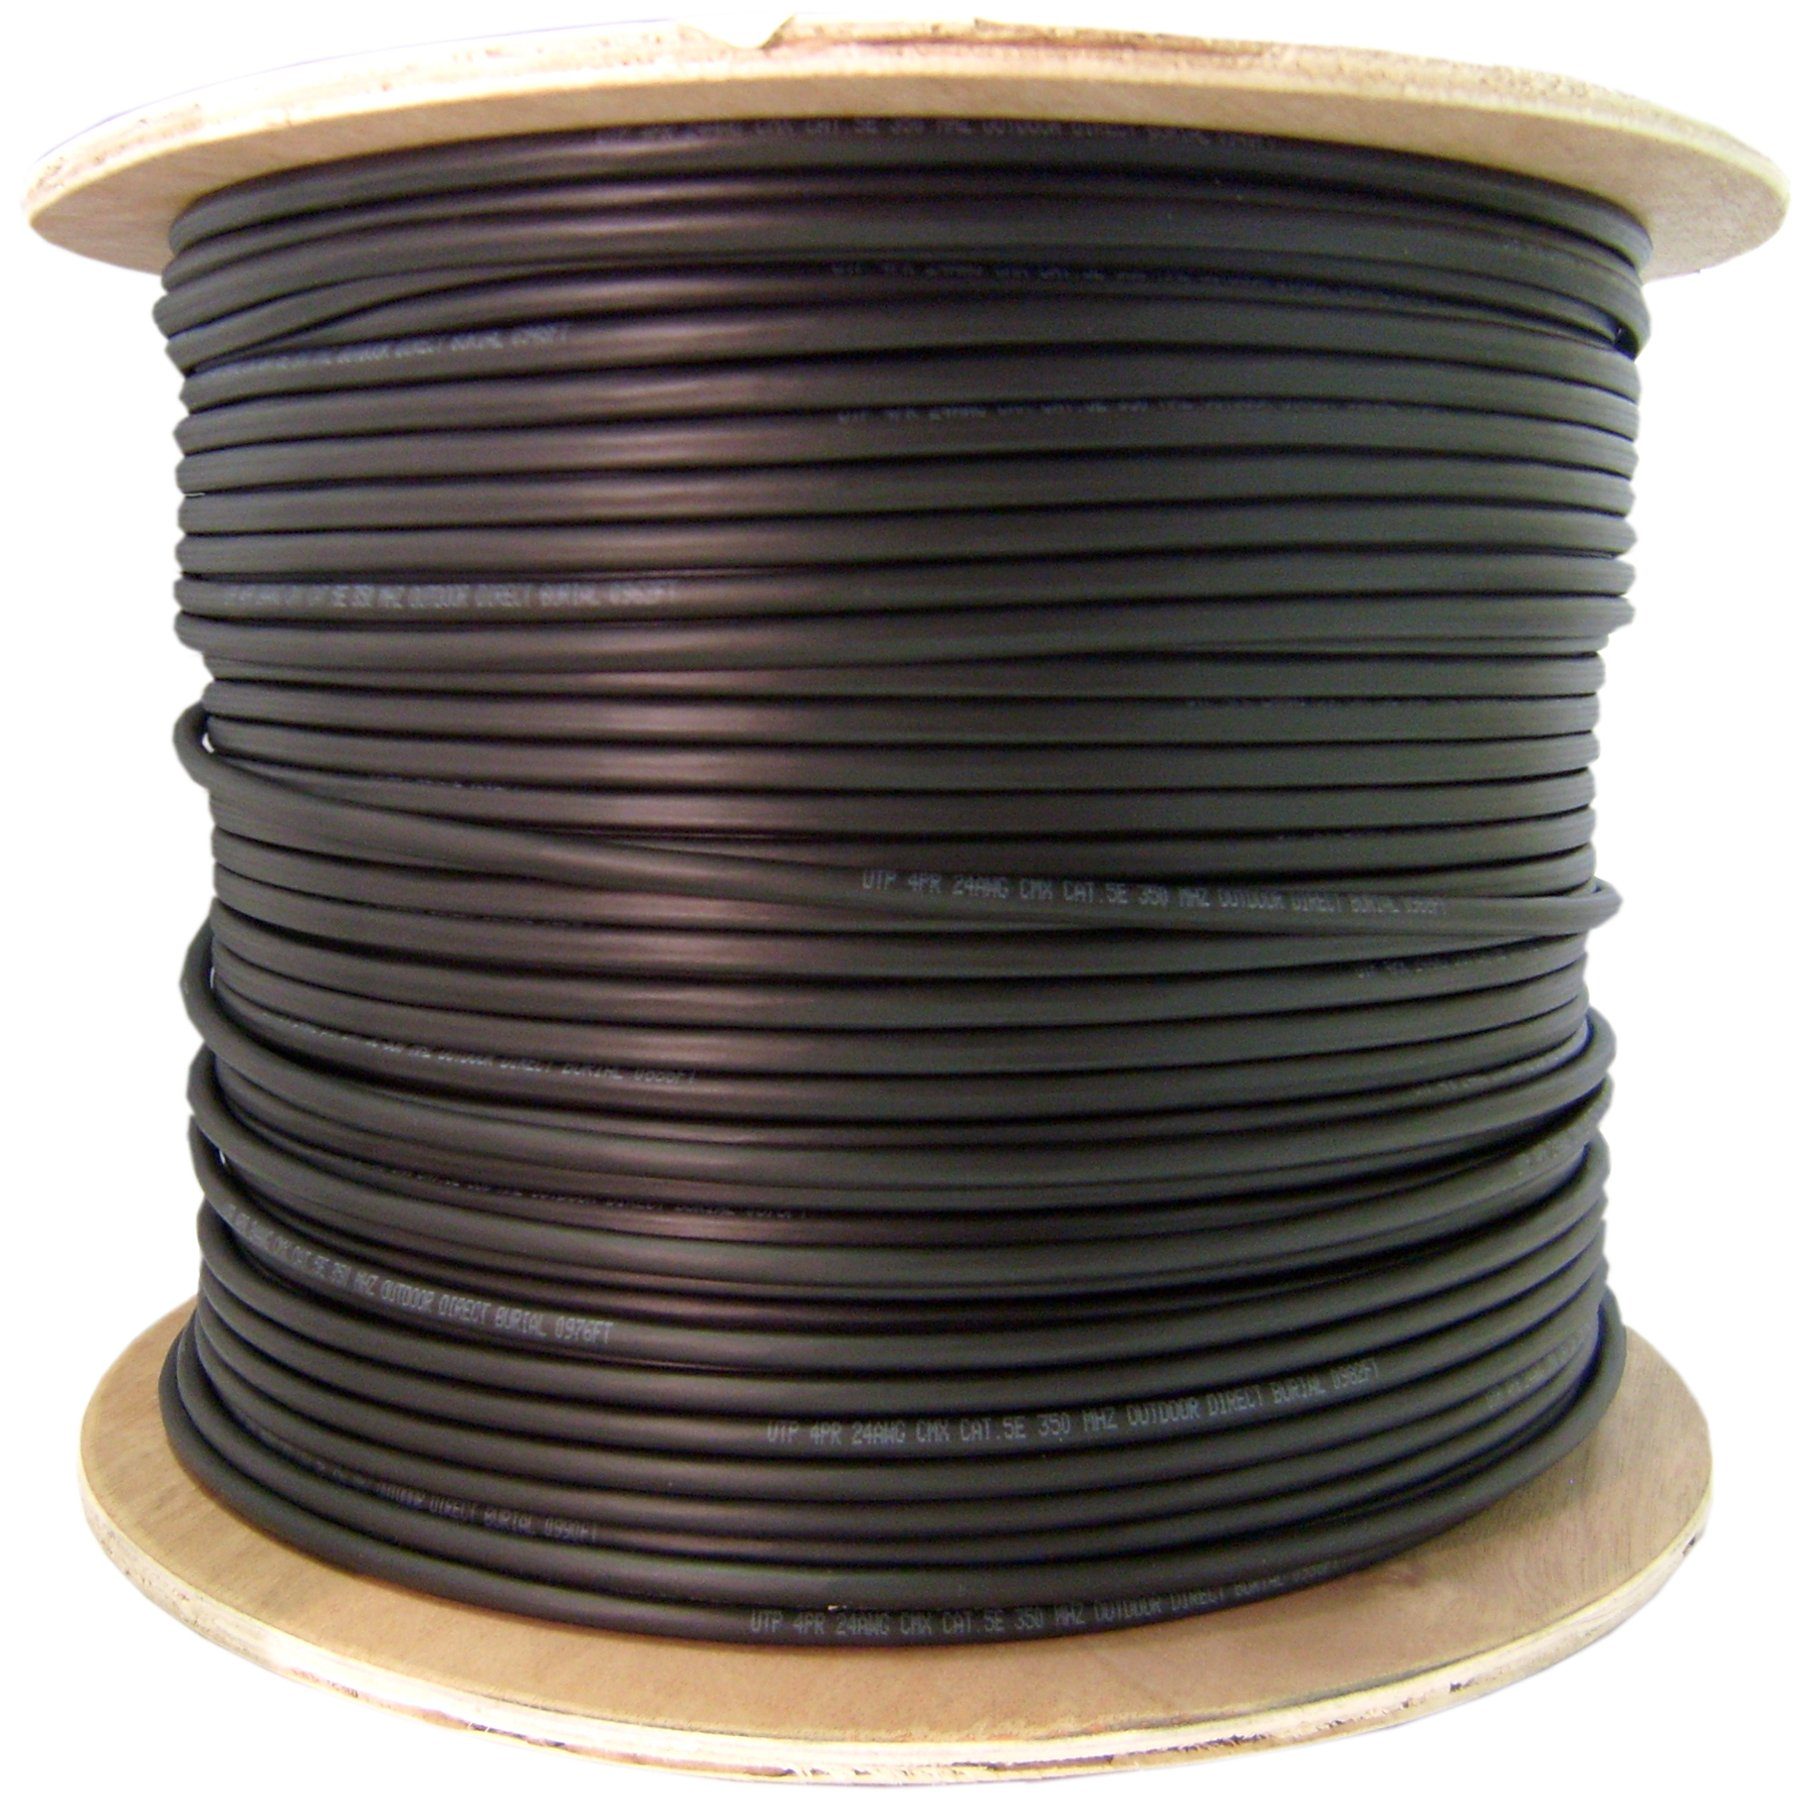 CERTICABLE 500' FT RG6 QUAD SHIELD CABLE WIRE DIRECT BURIAL FLOODED NO CONNECTORS